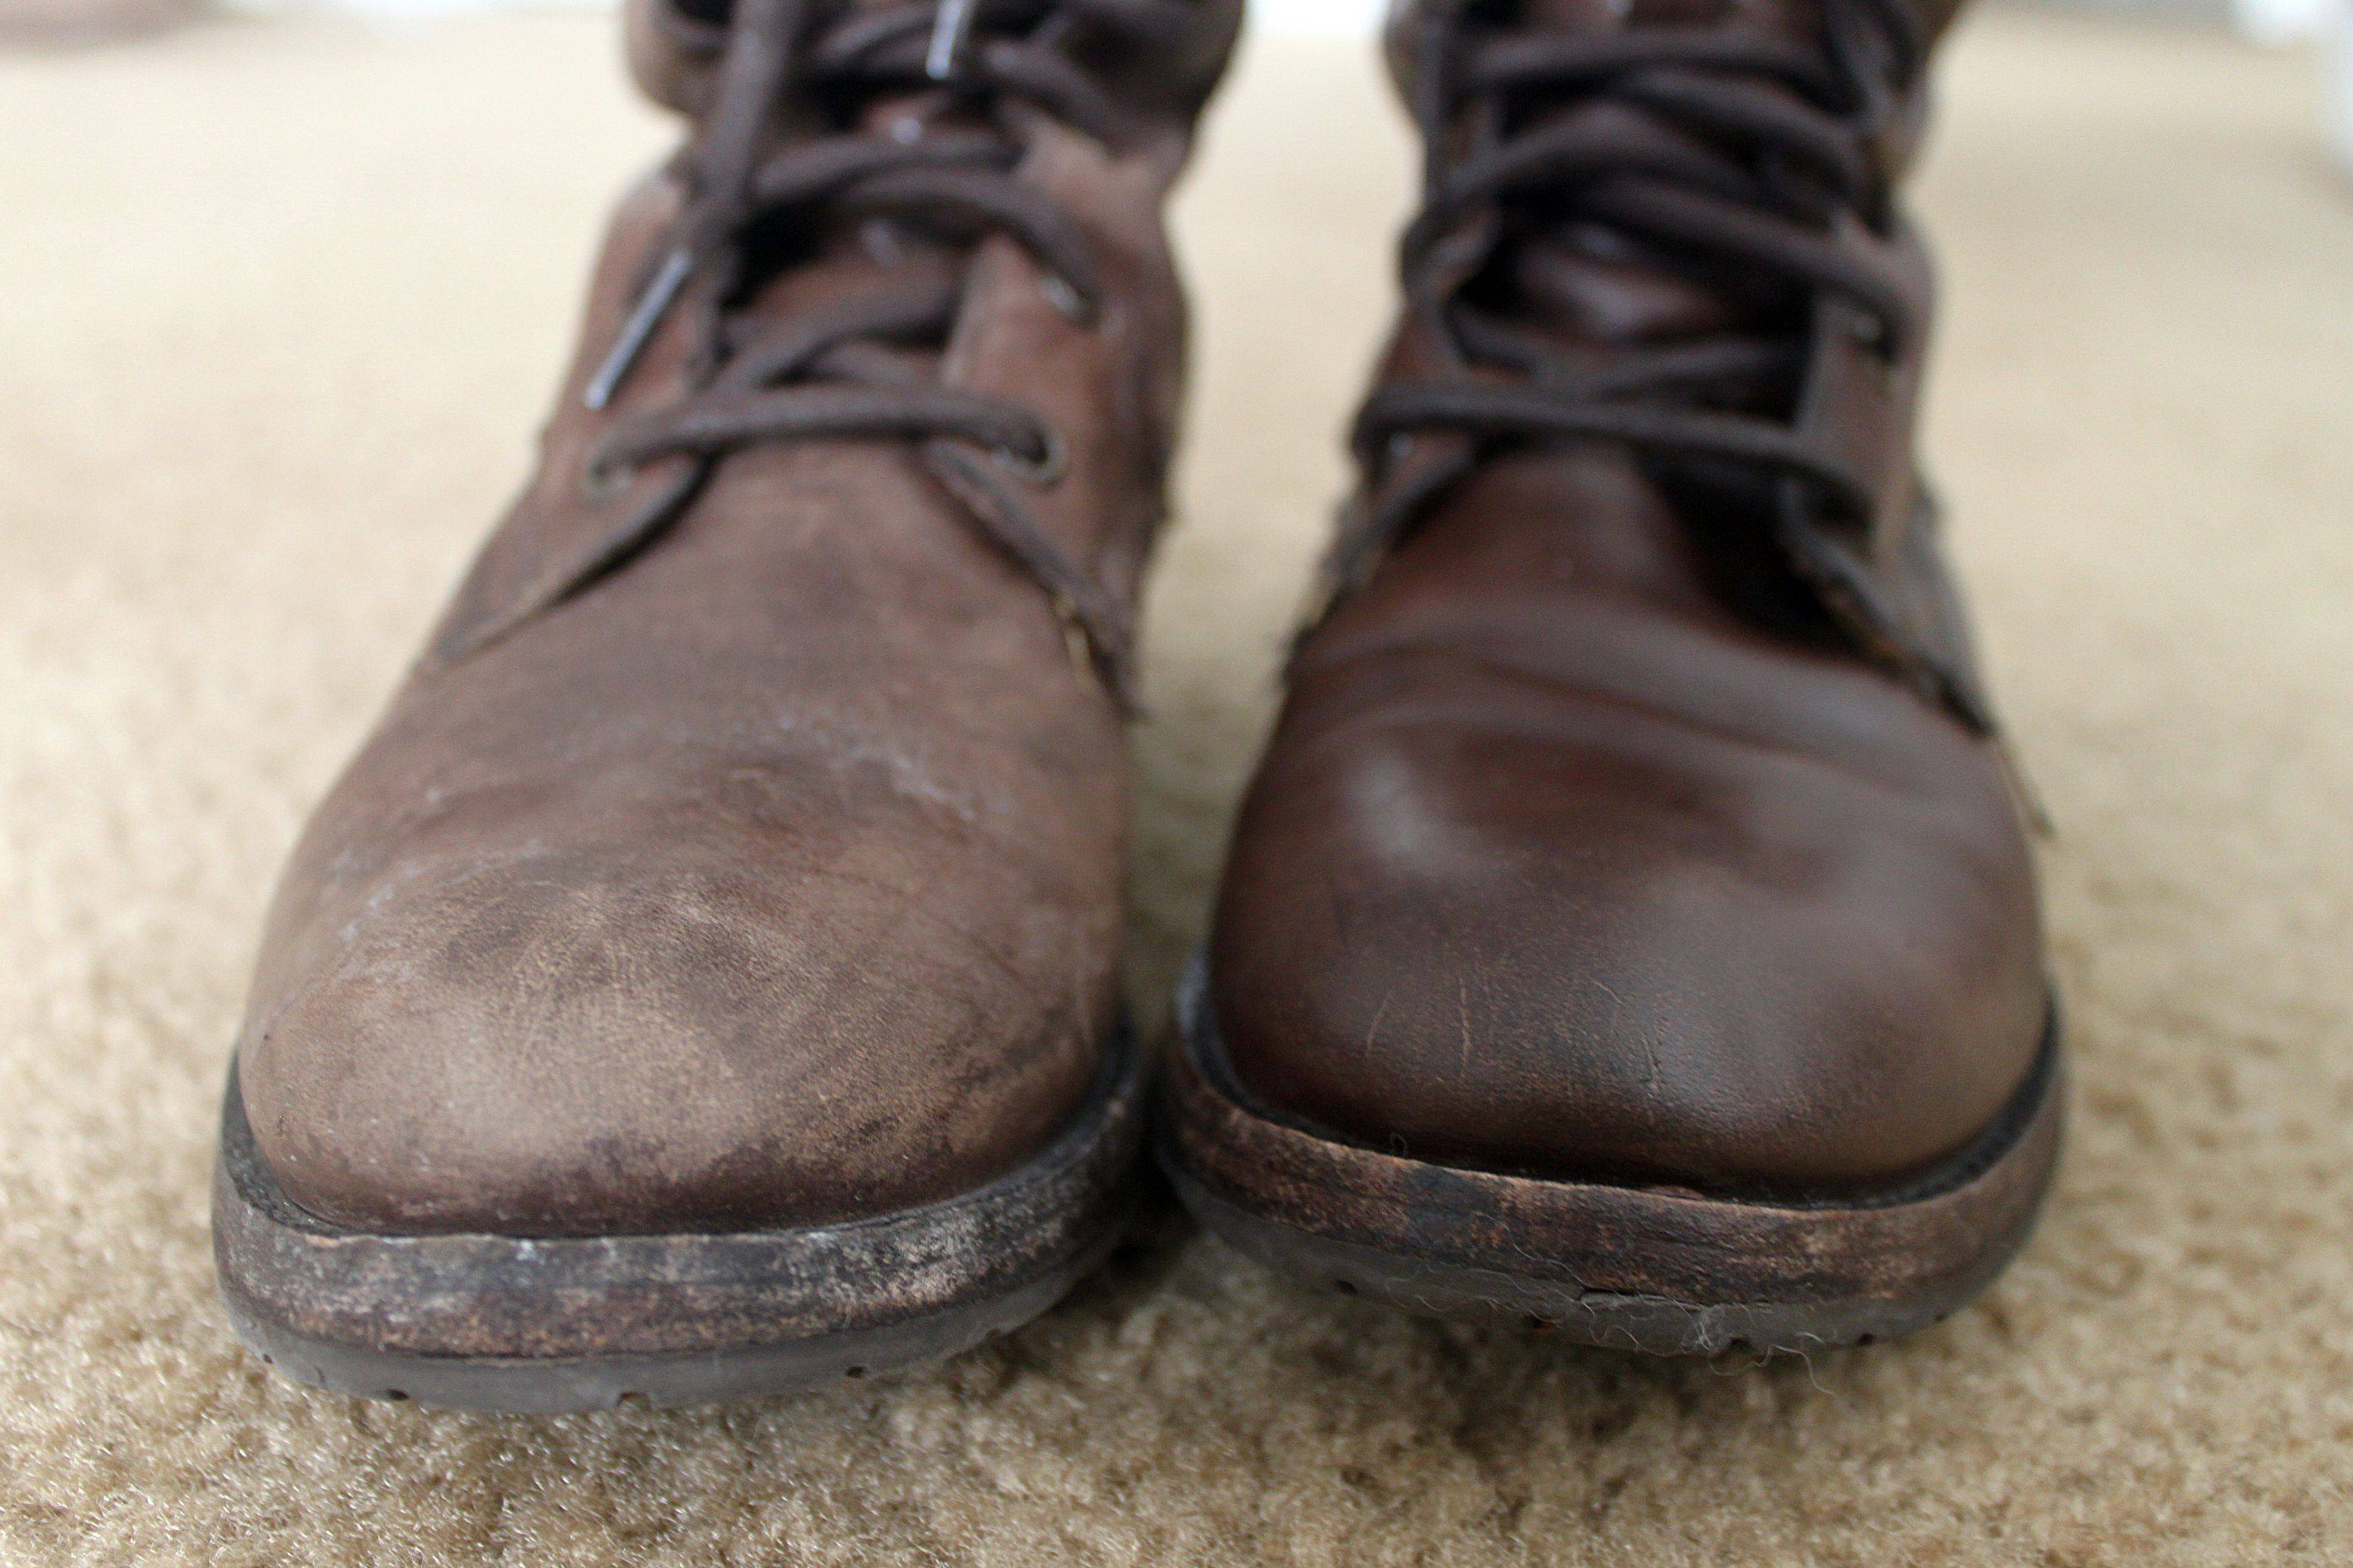 Scuffed Leather Shoes